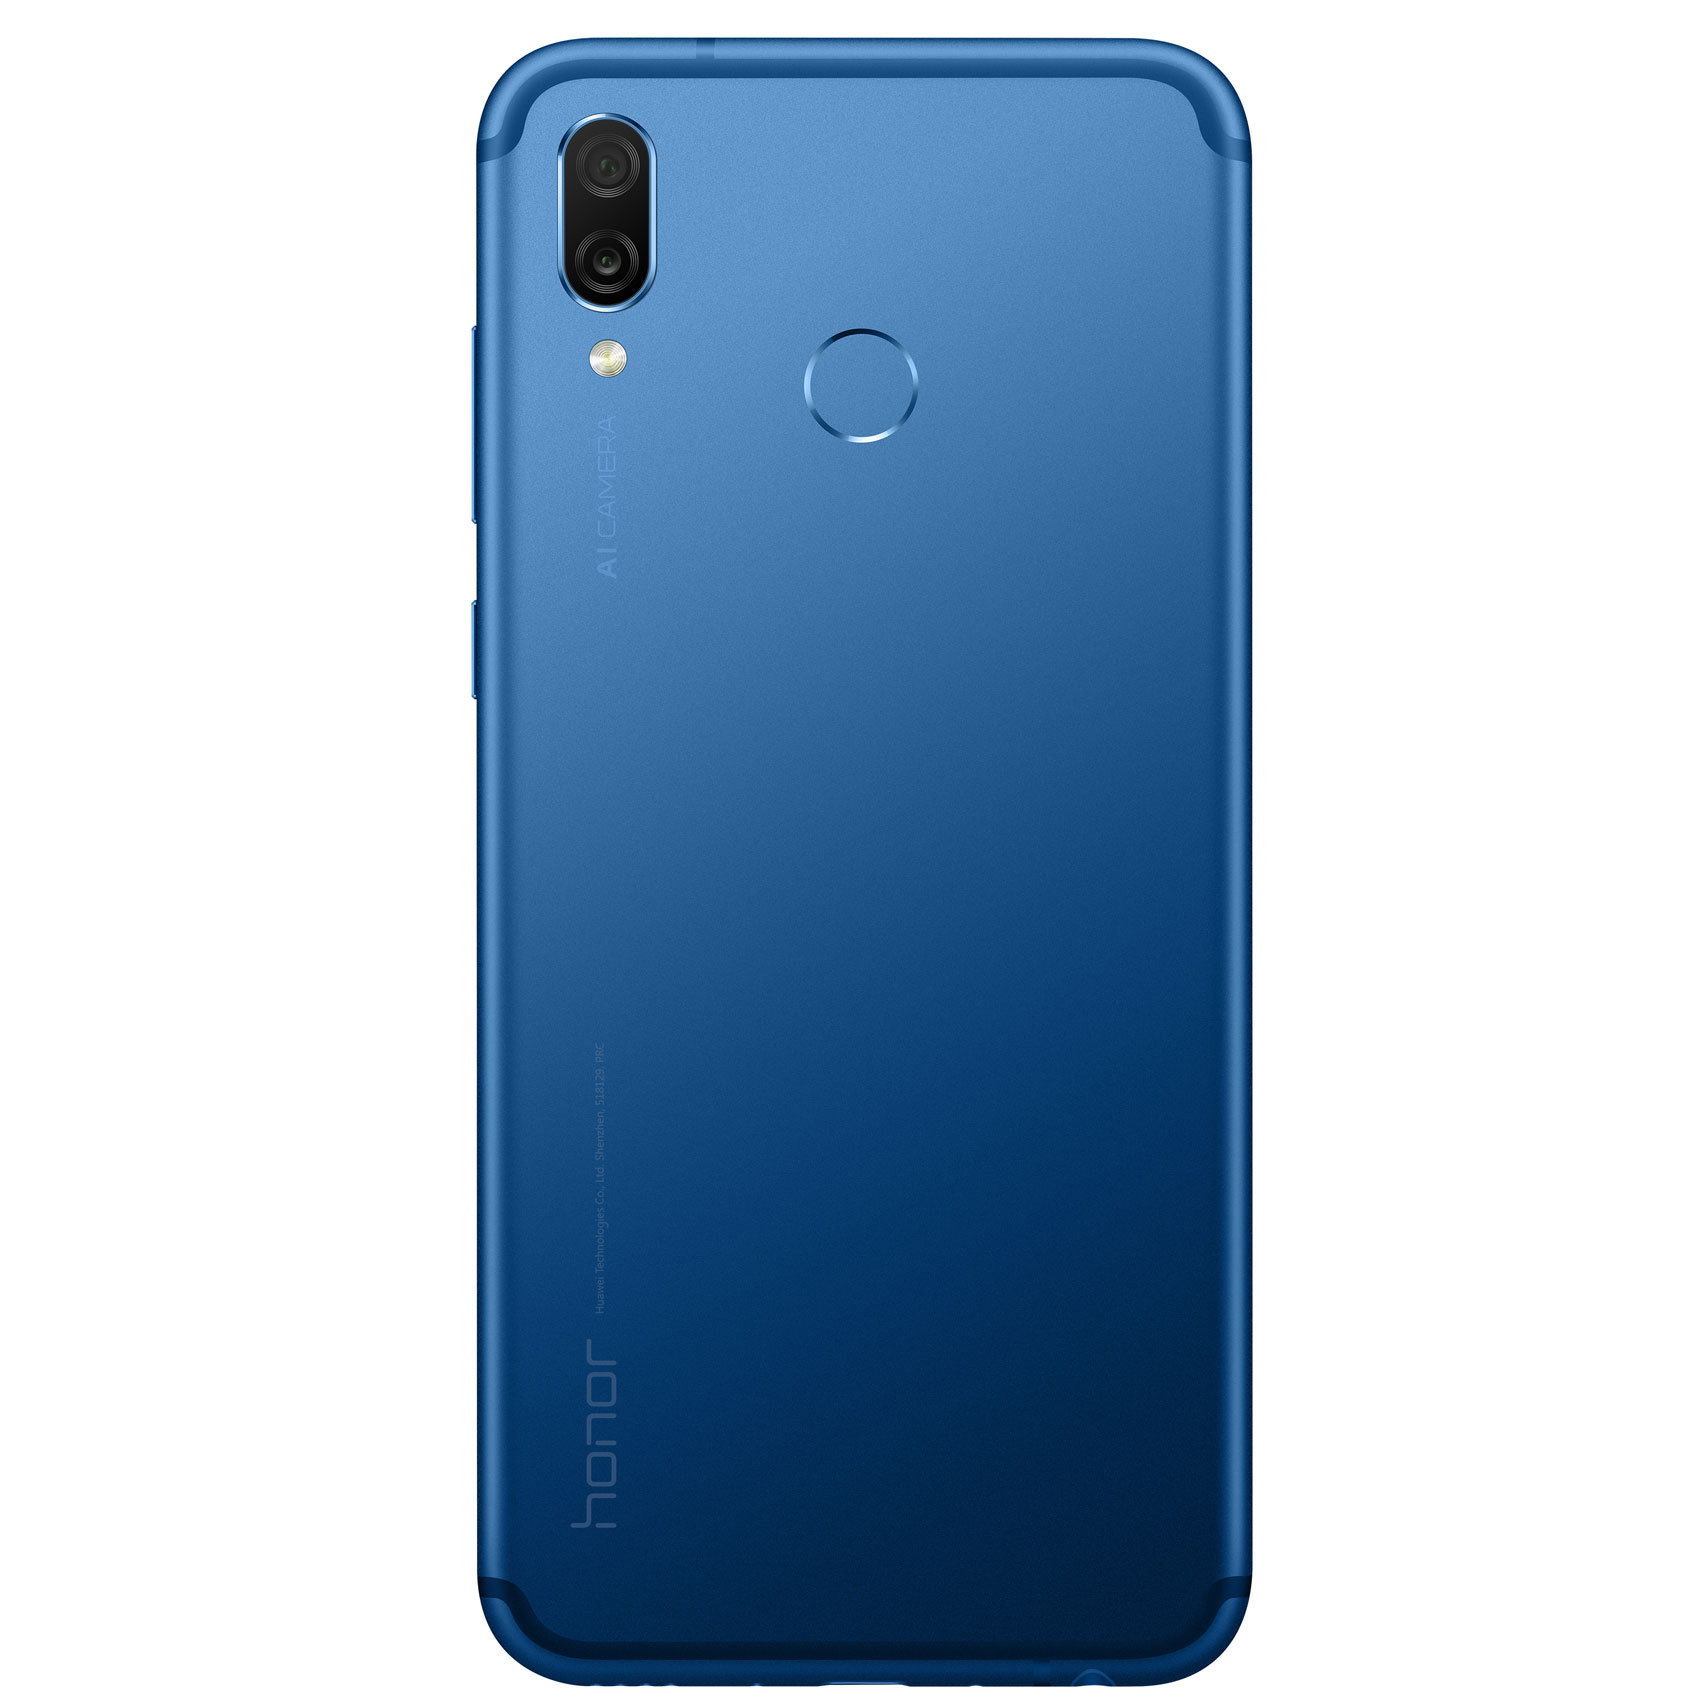 HONOR PLAY 64GB DS 4G BLUE+ 64GB